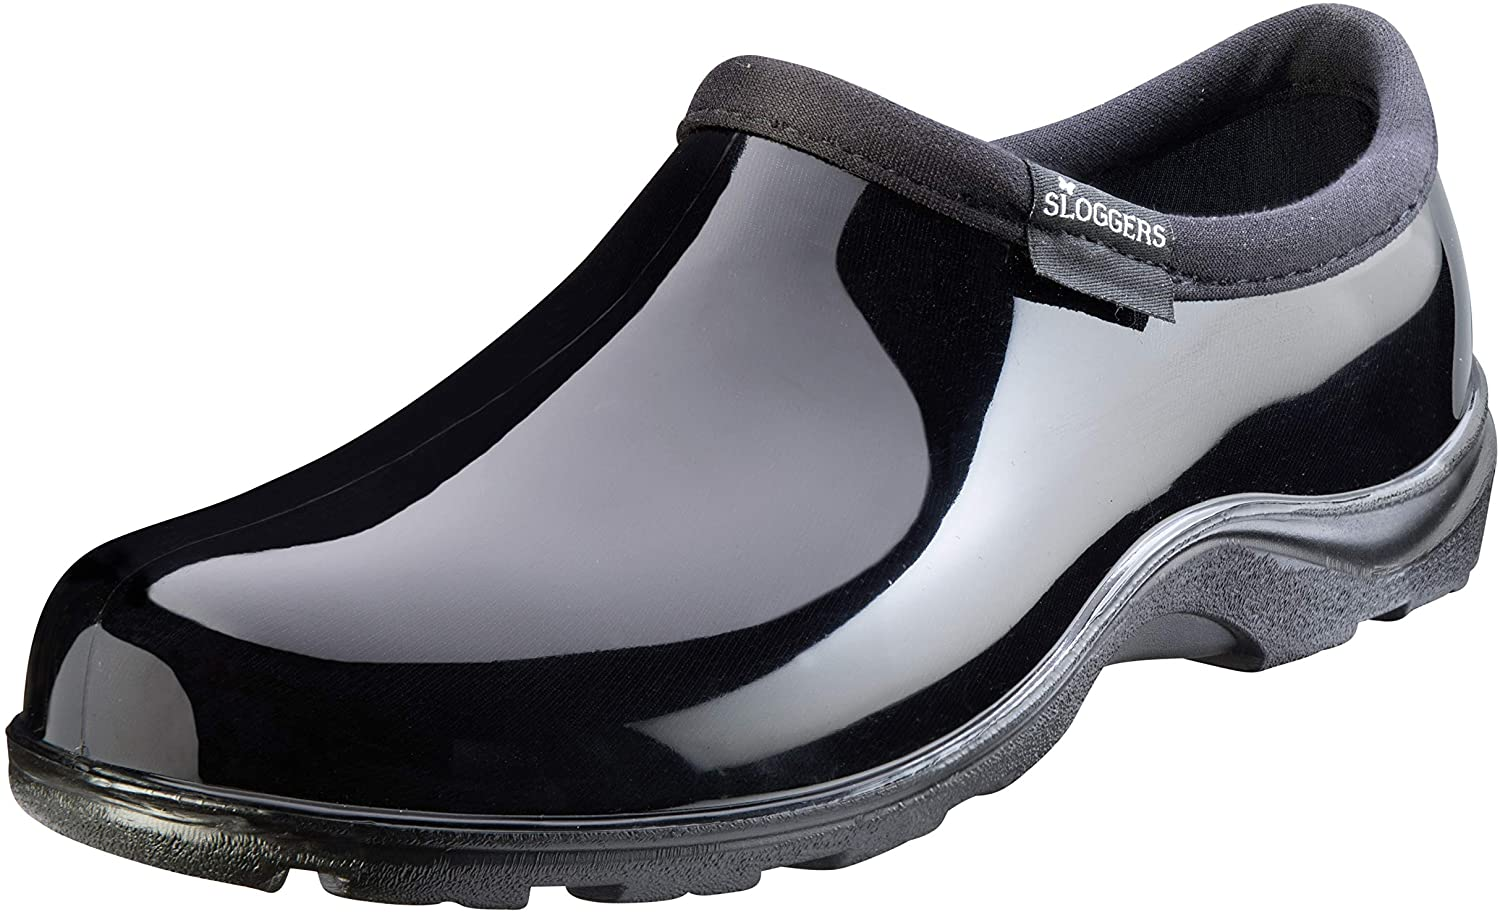 Sloggers Women's WaterproofRain and Garden Shoe with Comfort Insole, Classic Black, Size 10, Style 5100BK10